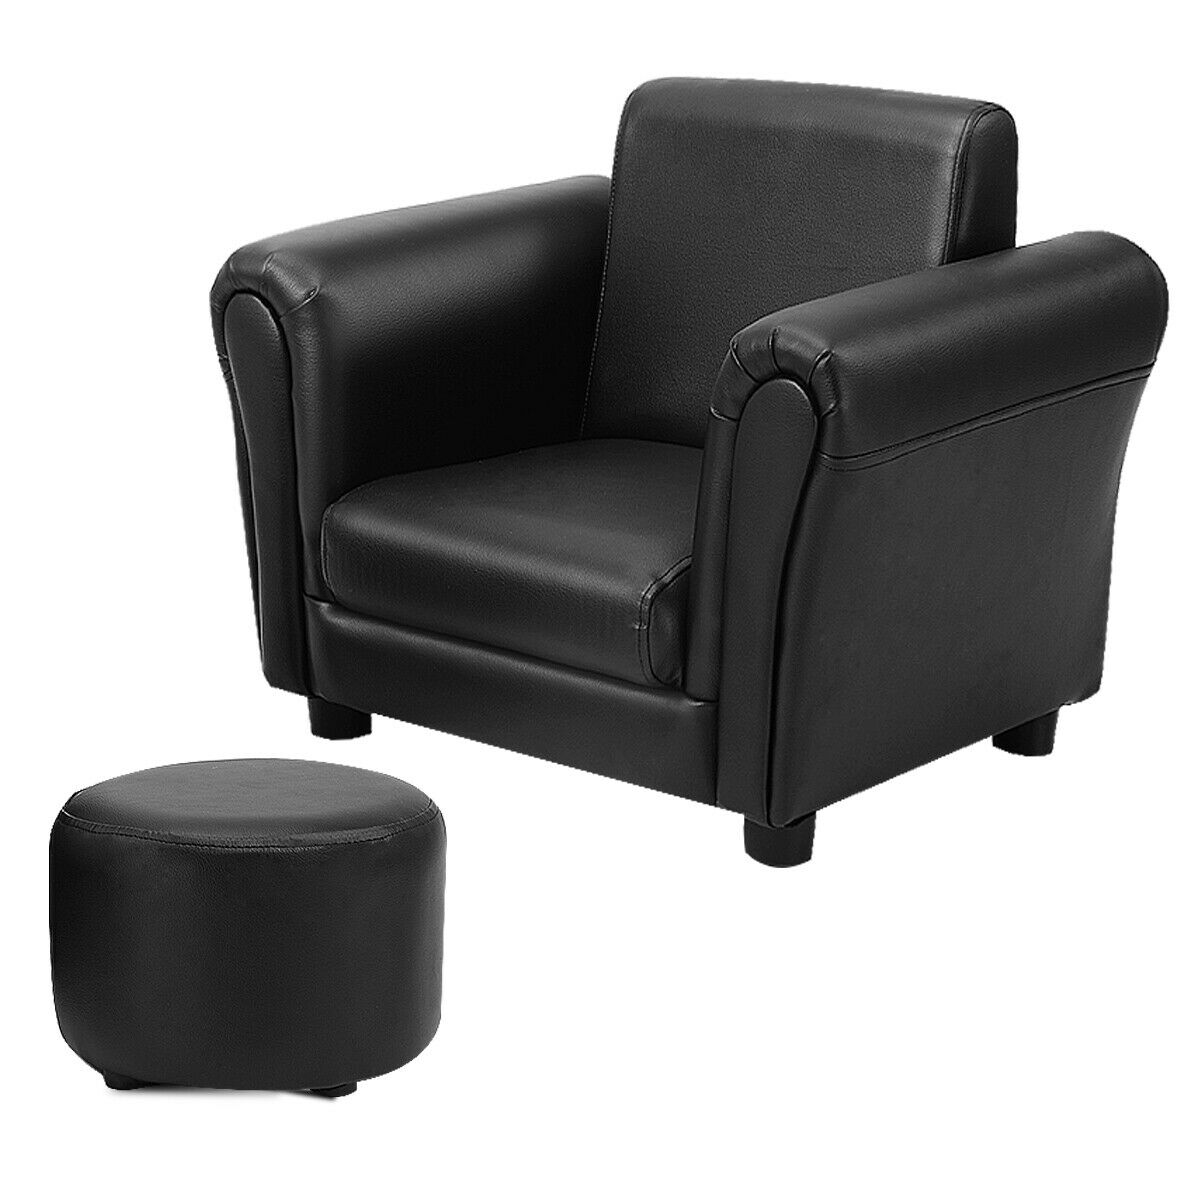 Costway Black Kids Sofa Armrest Chair Couch Children Toddler Birthday Gift W/ Ottoman